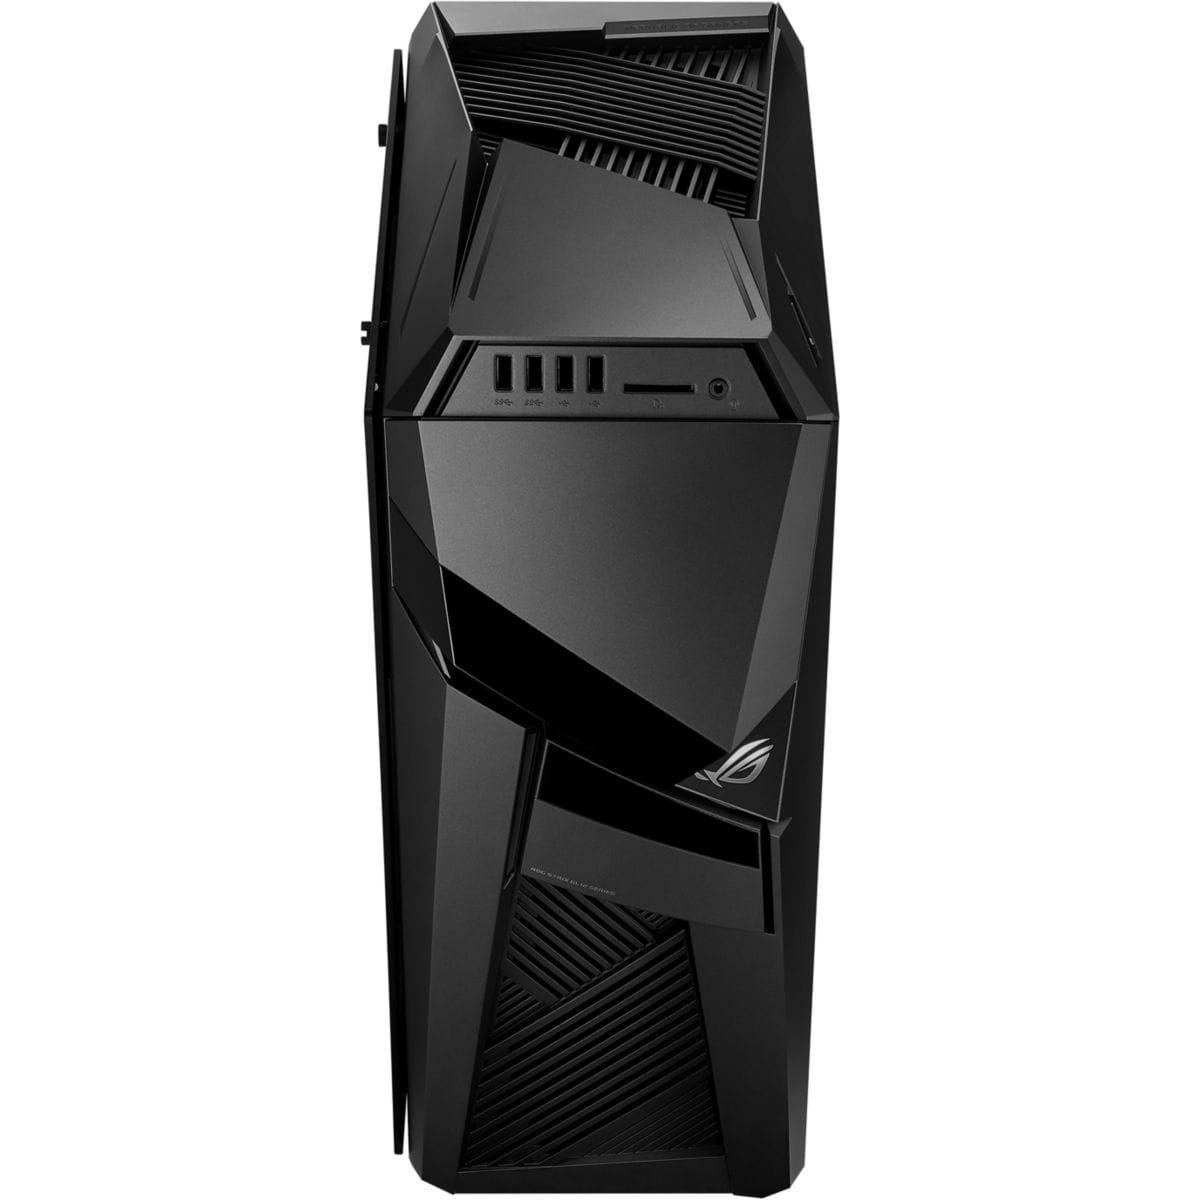 Achat Ordinateur De Bureau Pc Gamer Asus Gl12cp Fr099t Ordinateurs De Bureau Pc Gamer